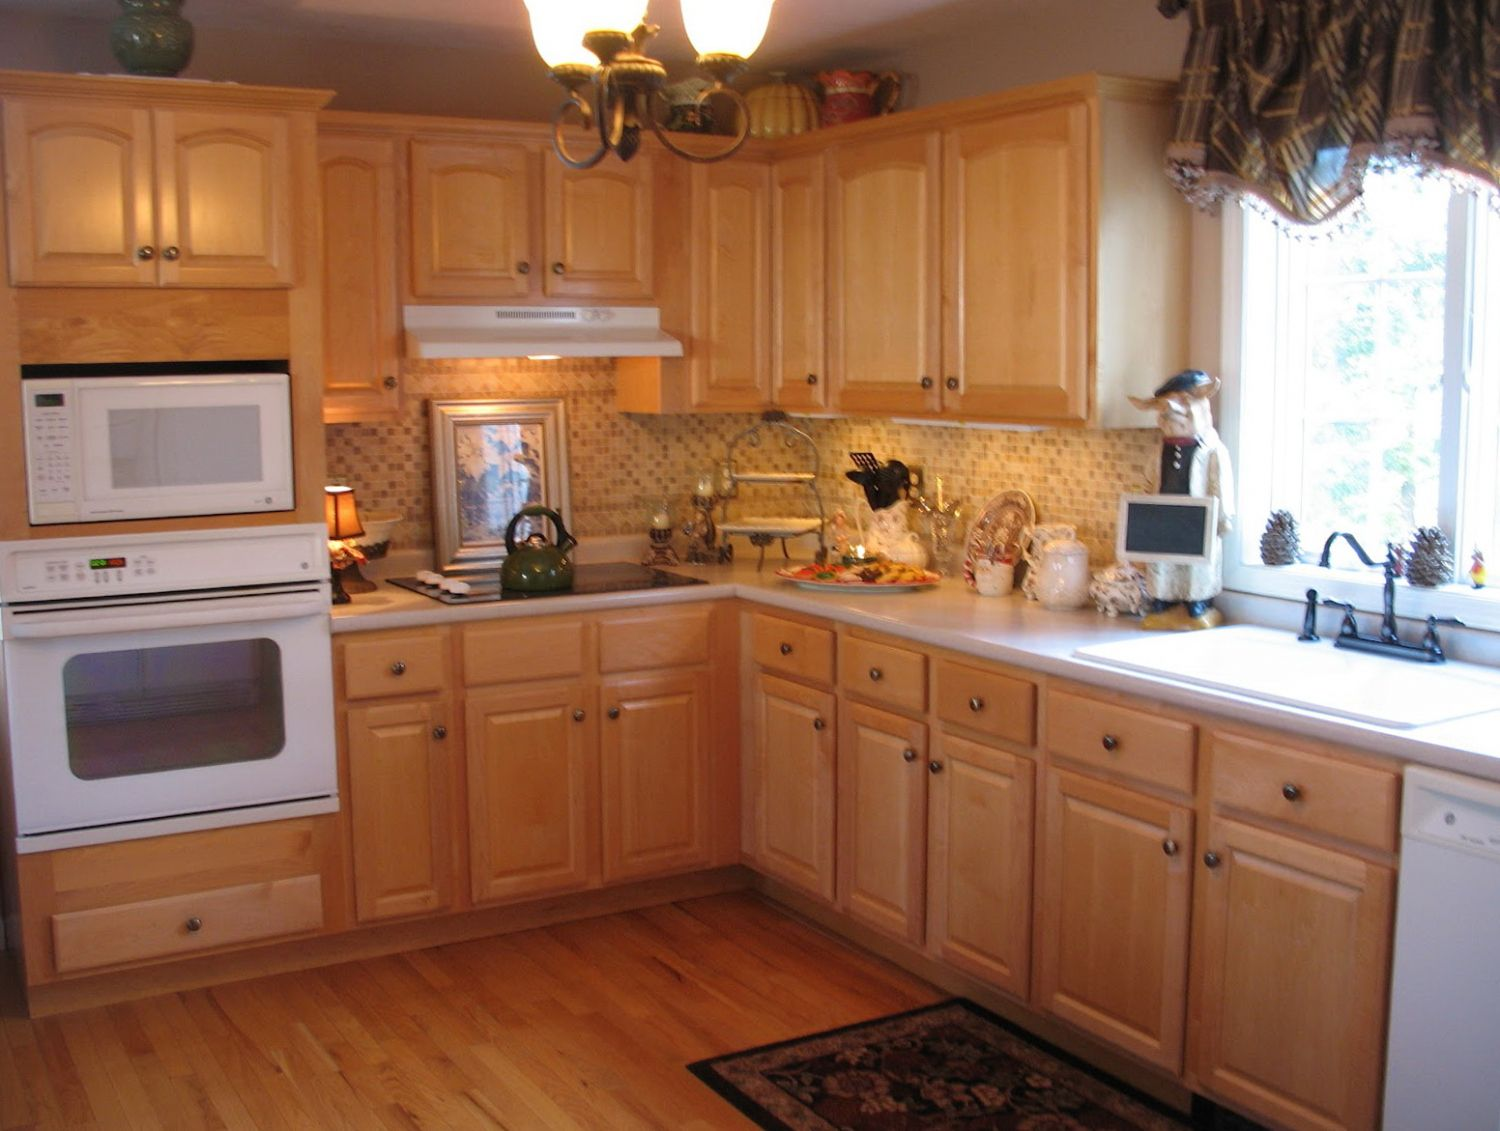 Pin by Annora on home interior | Home depot kitchen, Maple ...